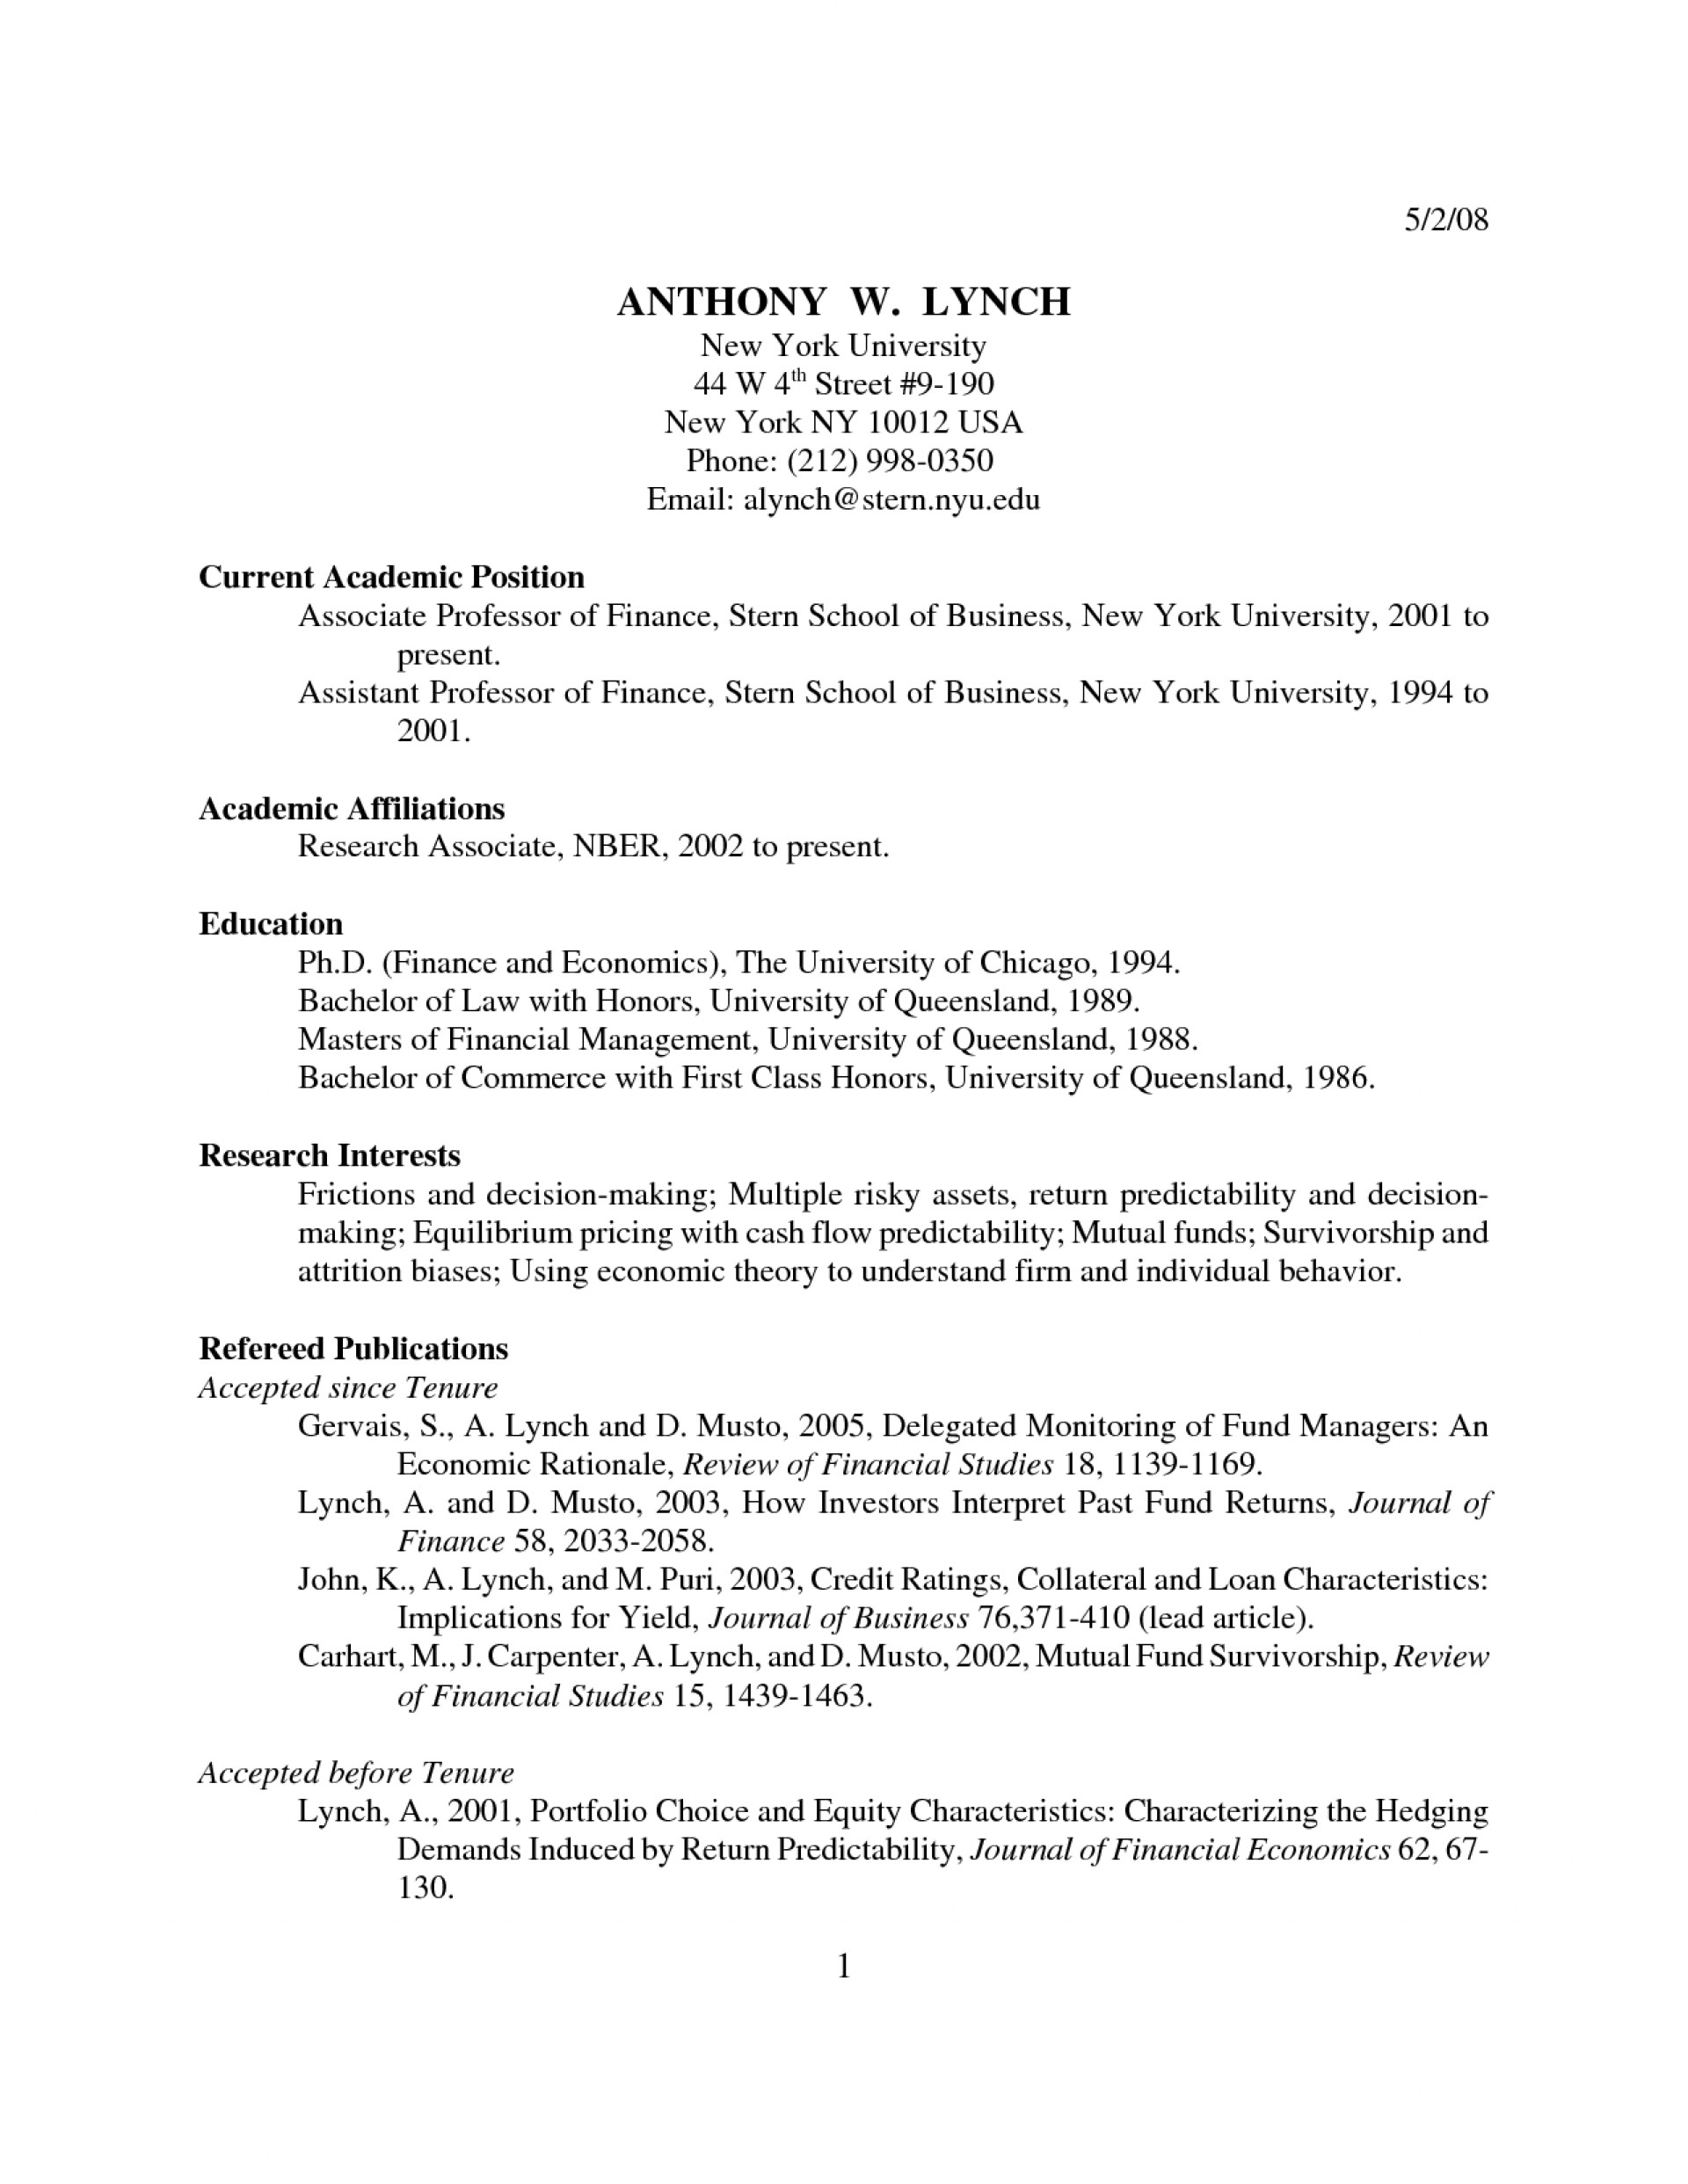 019 Format For Sciencech Paper Bunch Ideas Of Best Images Sample Apa Proposal Cool Awesome Science Research Political Mla Scientific 1920